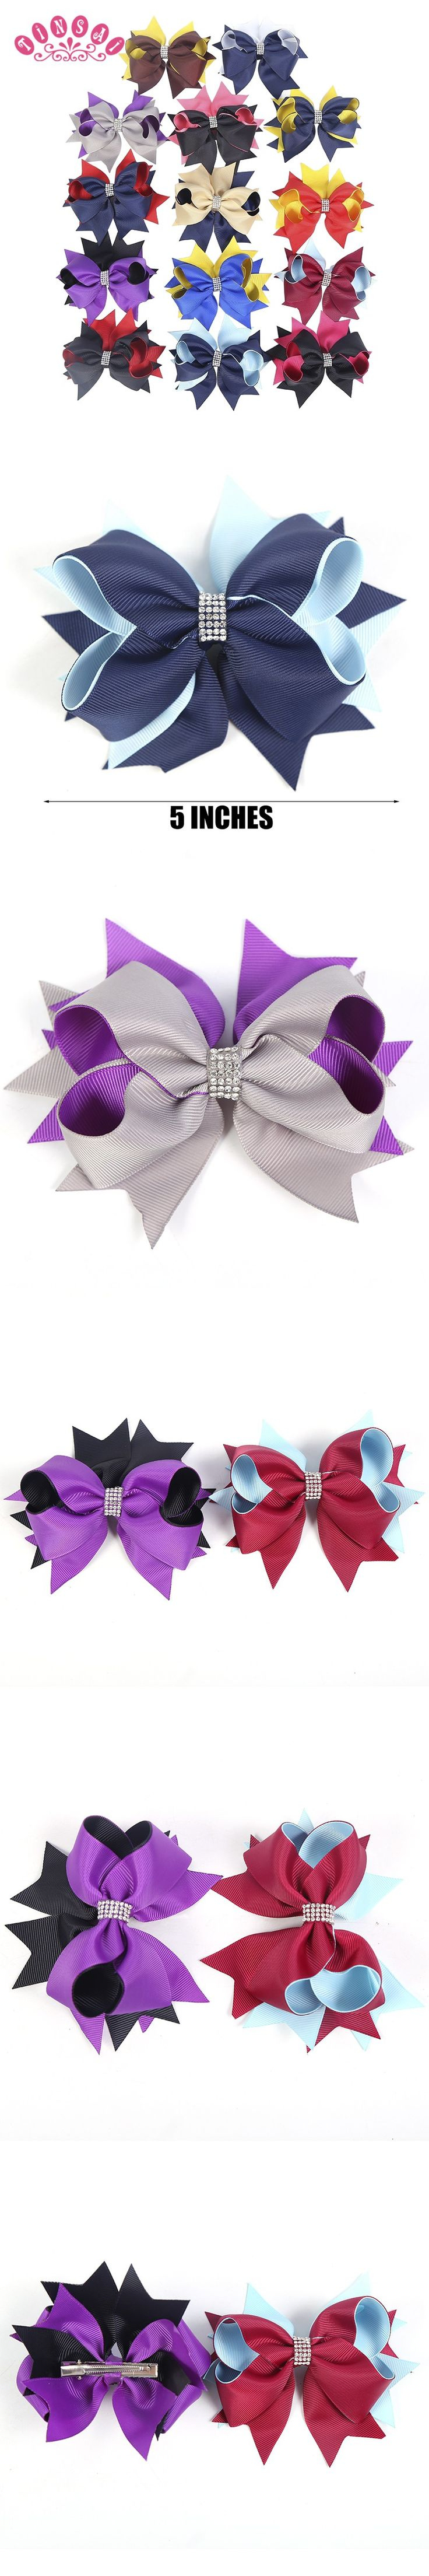 Ha hair accessories for sale - Tinsai 20pc Hair Bows 5 Inch Navy Ribbons Bows Chic Hairpins Children Big Boutique Headband Baby Girl Hair Accessories Wholesale